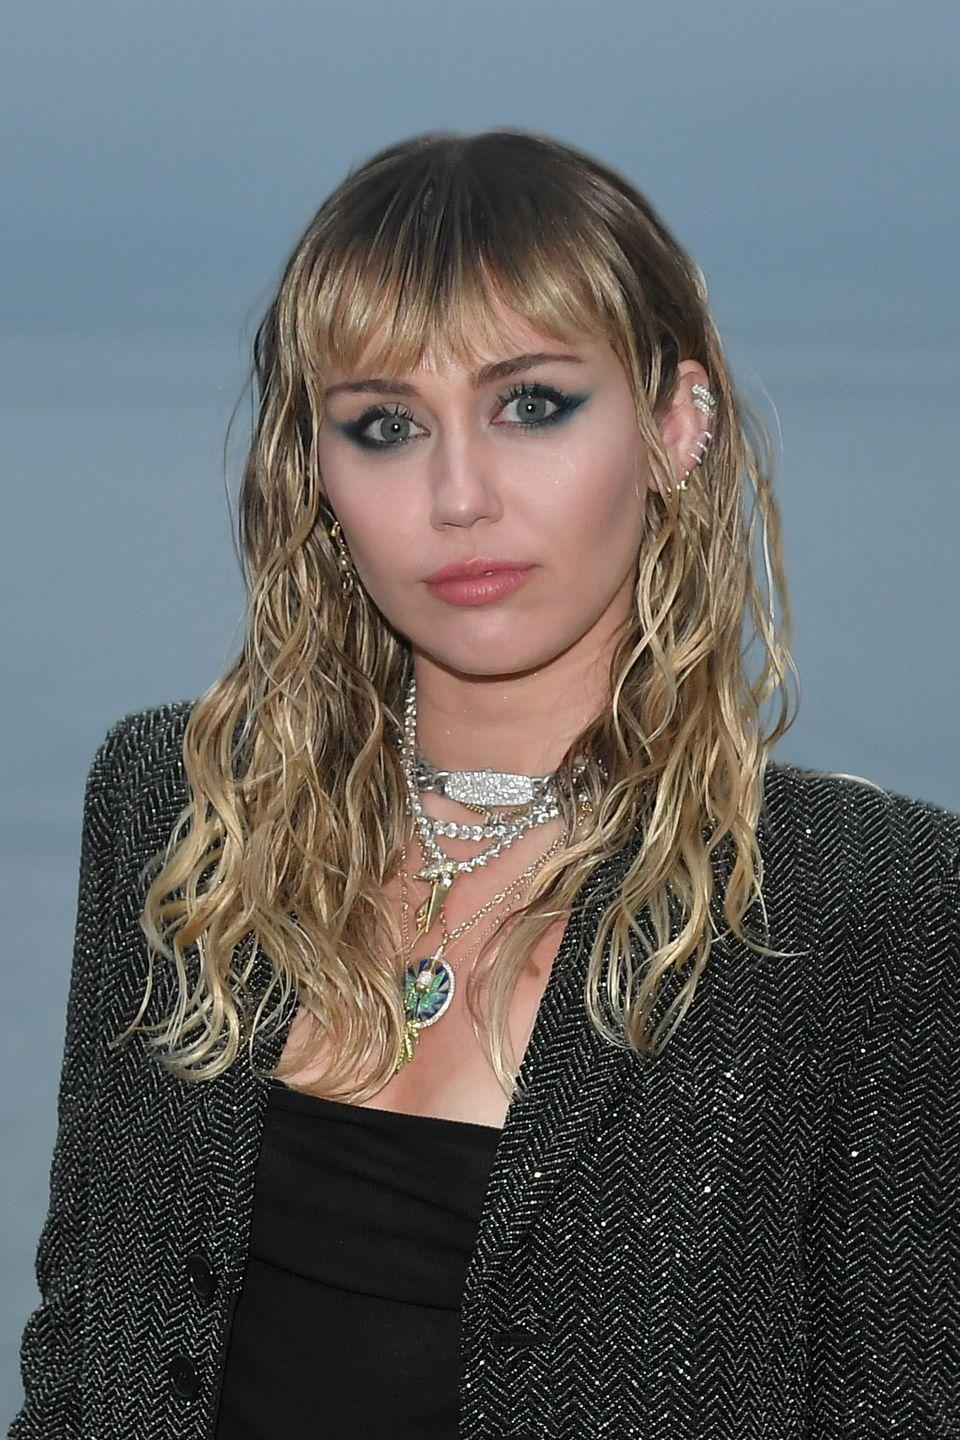 <p>Miley definitely acts like she's older than her mid-20s. Plus, the fact that we've watched her evolve from Hannah Montana to real-life pop superstar makes it feel like she's been around <em>forever</em>.</p>